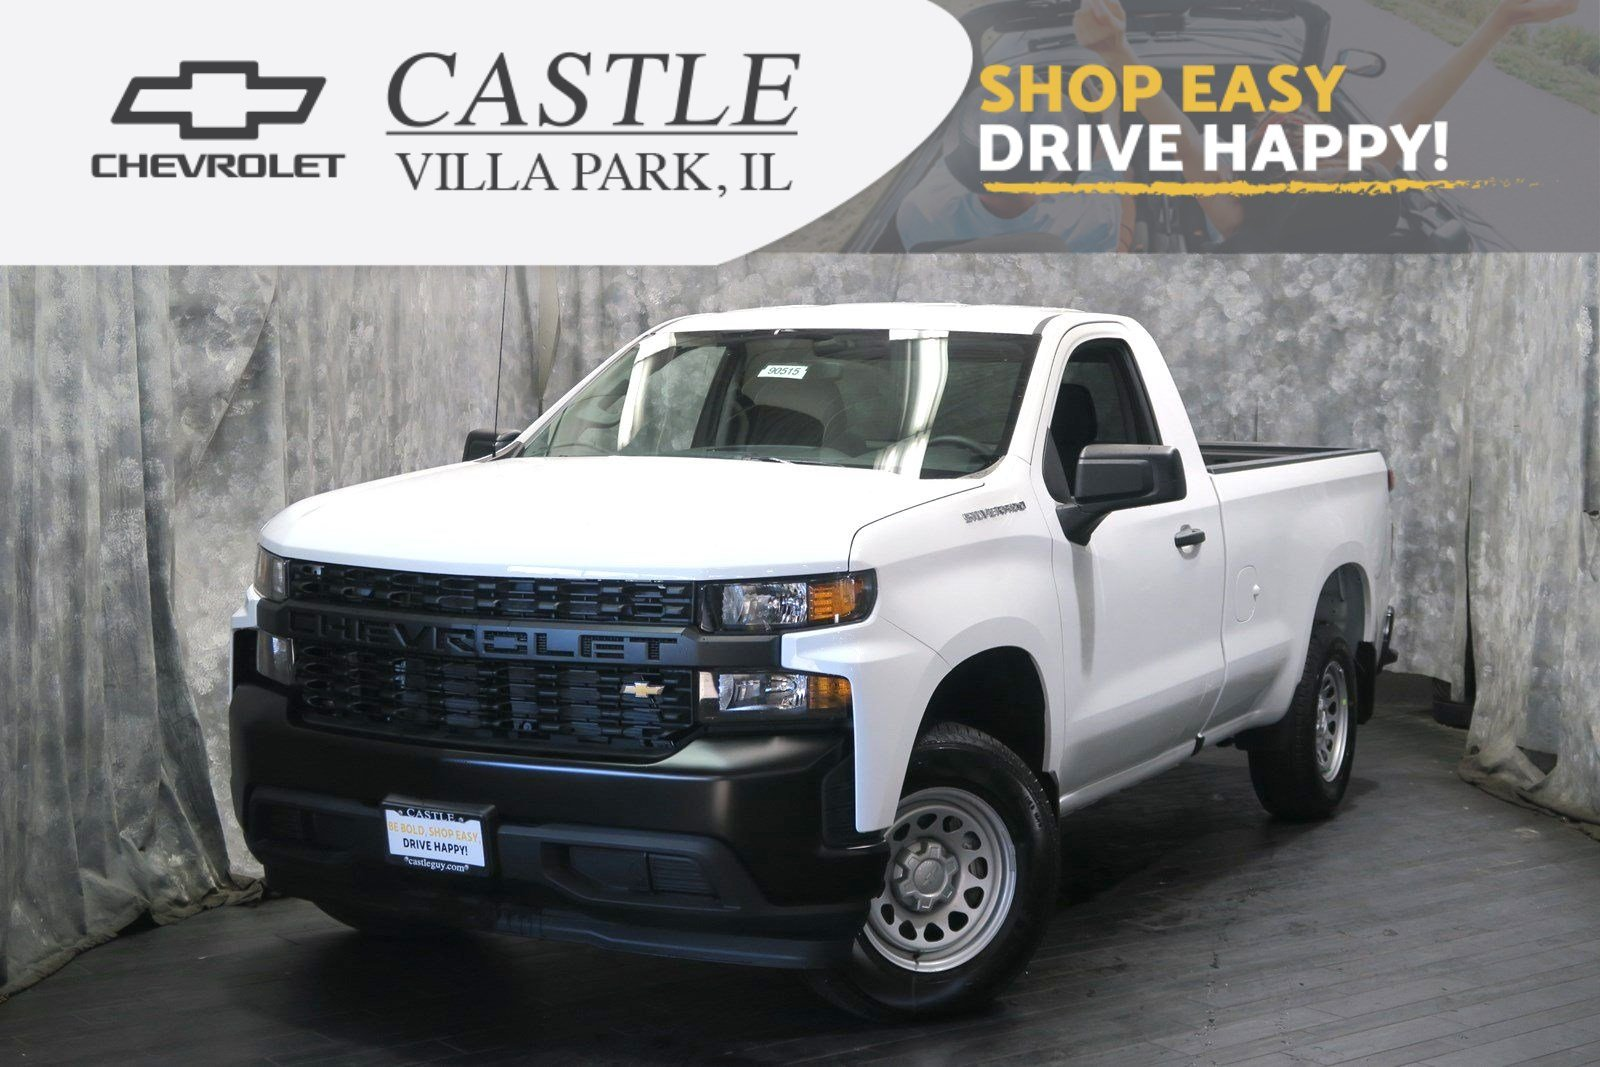 Chevy Work Truck >> New 2019 Chevrolet Silverado 1500 Work Truck Rwd Regular Cab Pickup